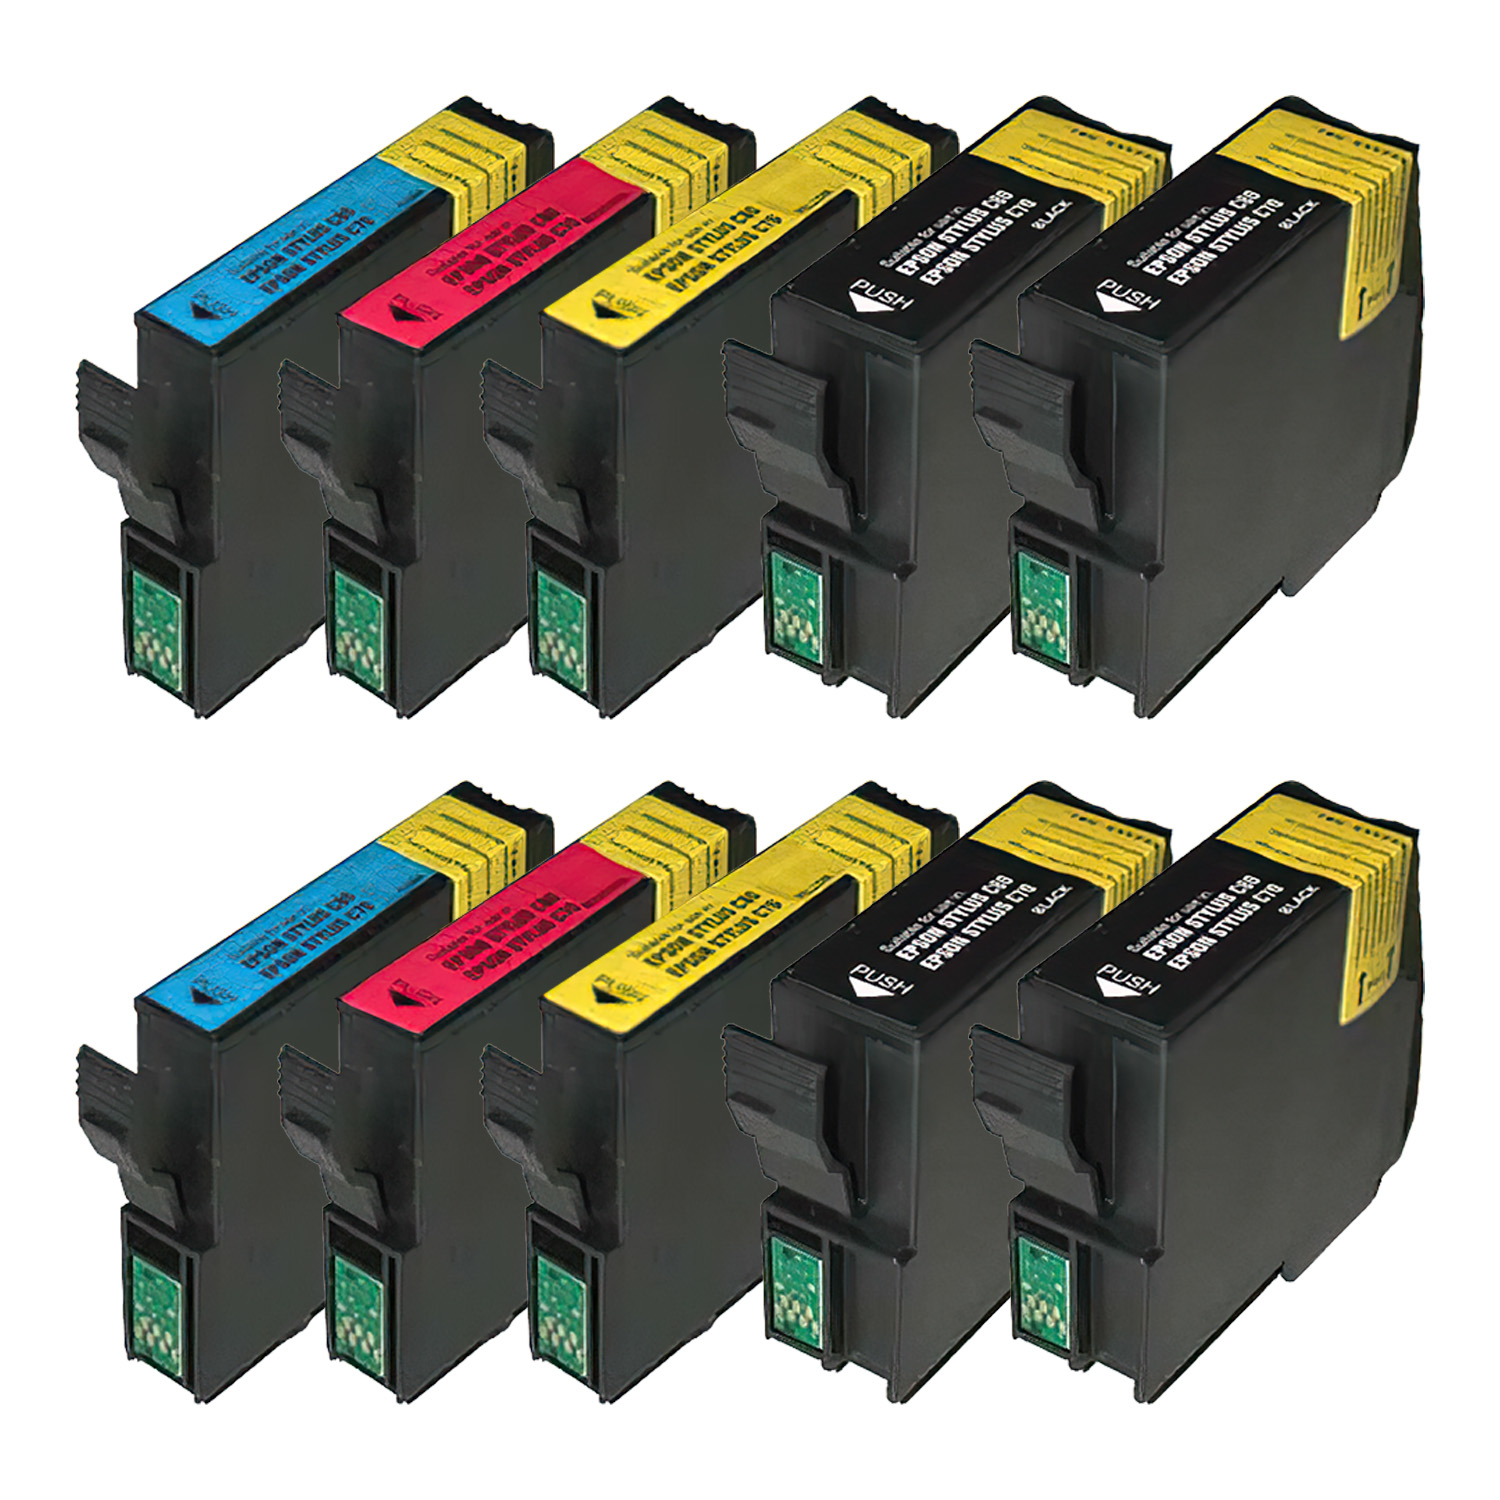 Remanufactured Epson 32 Inkjet Pack - 10 Cartridges